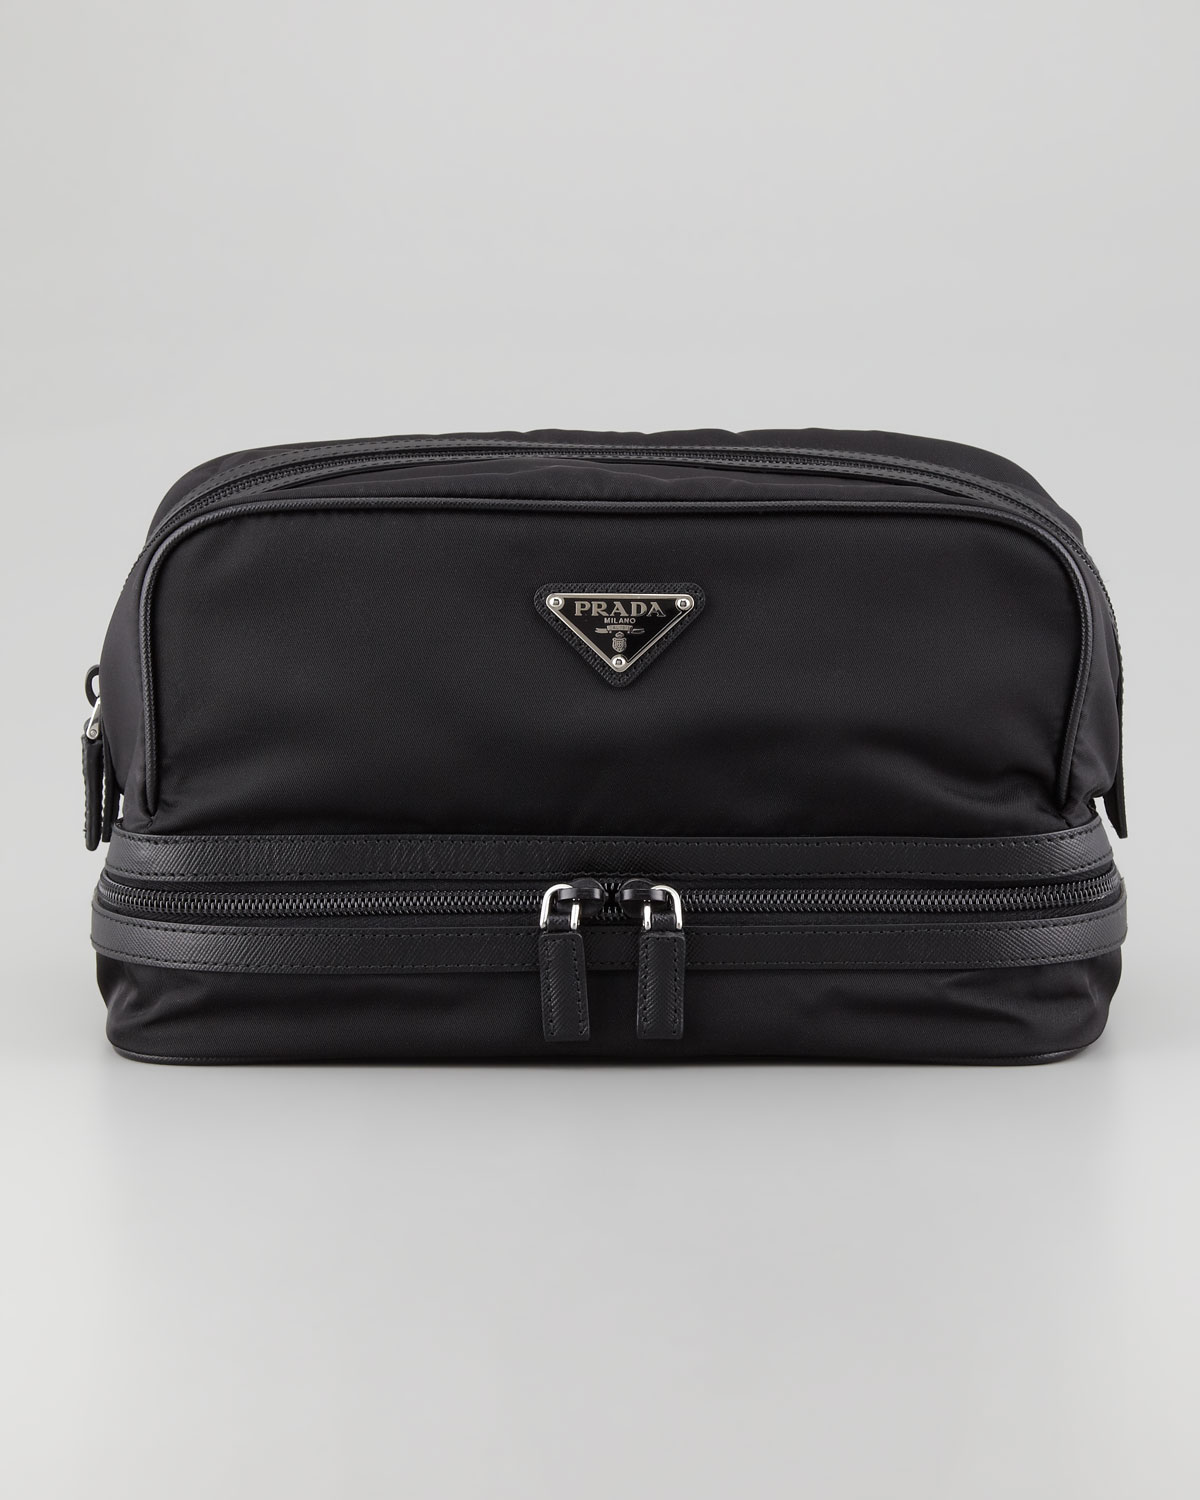 f6df89b956b1 Prada Toiletry Bag Mens | Stanford Center for Opportunity Policy in ...